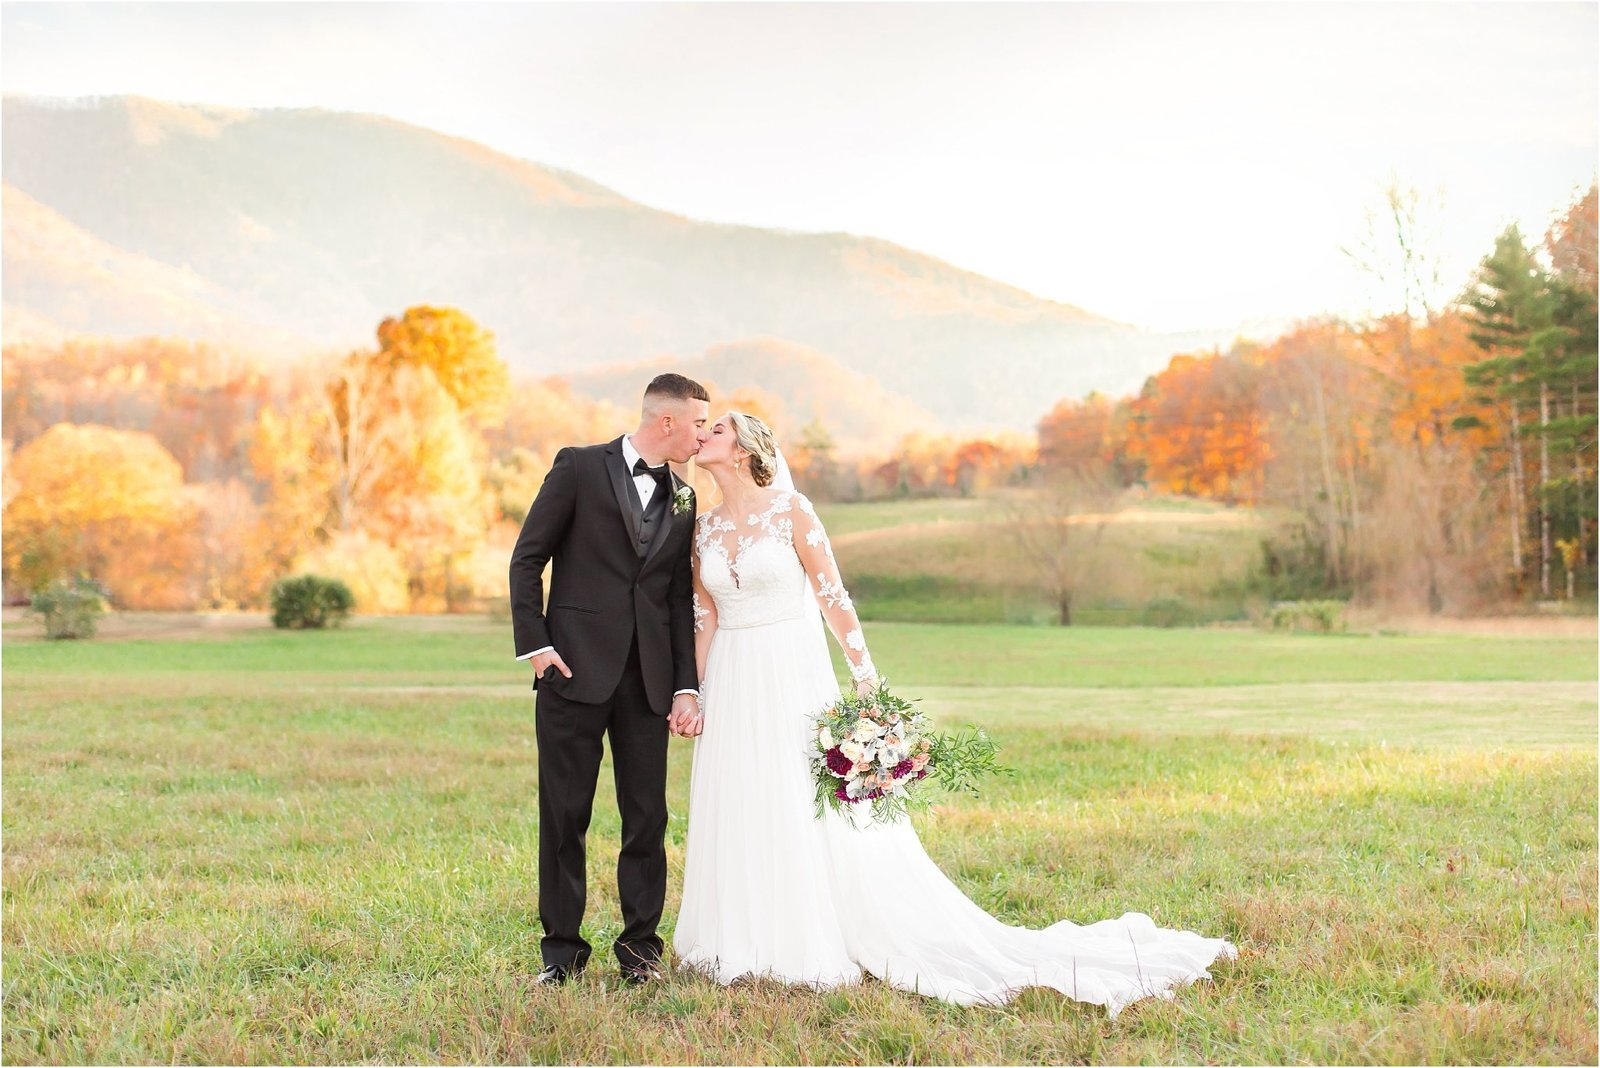 akingslodgeweddingpigeonforgeweddingsmokymountainsweddingmikayleeandian102125